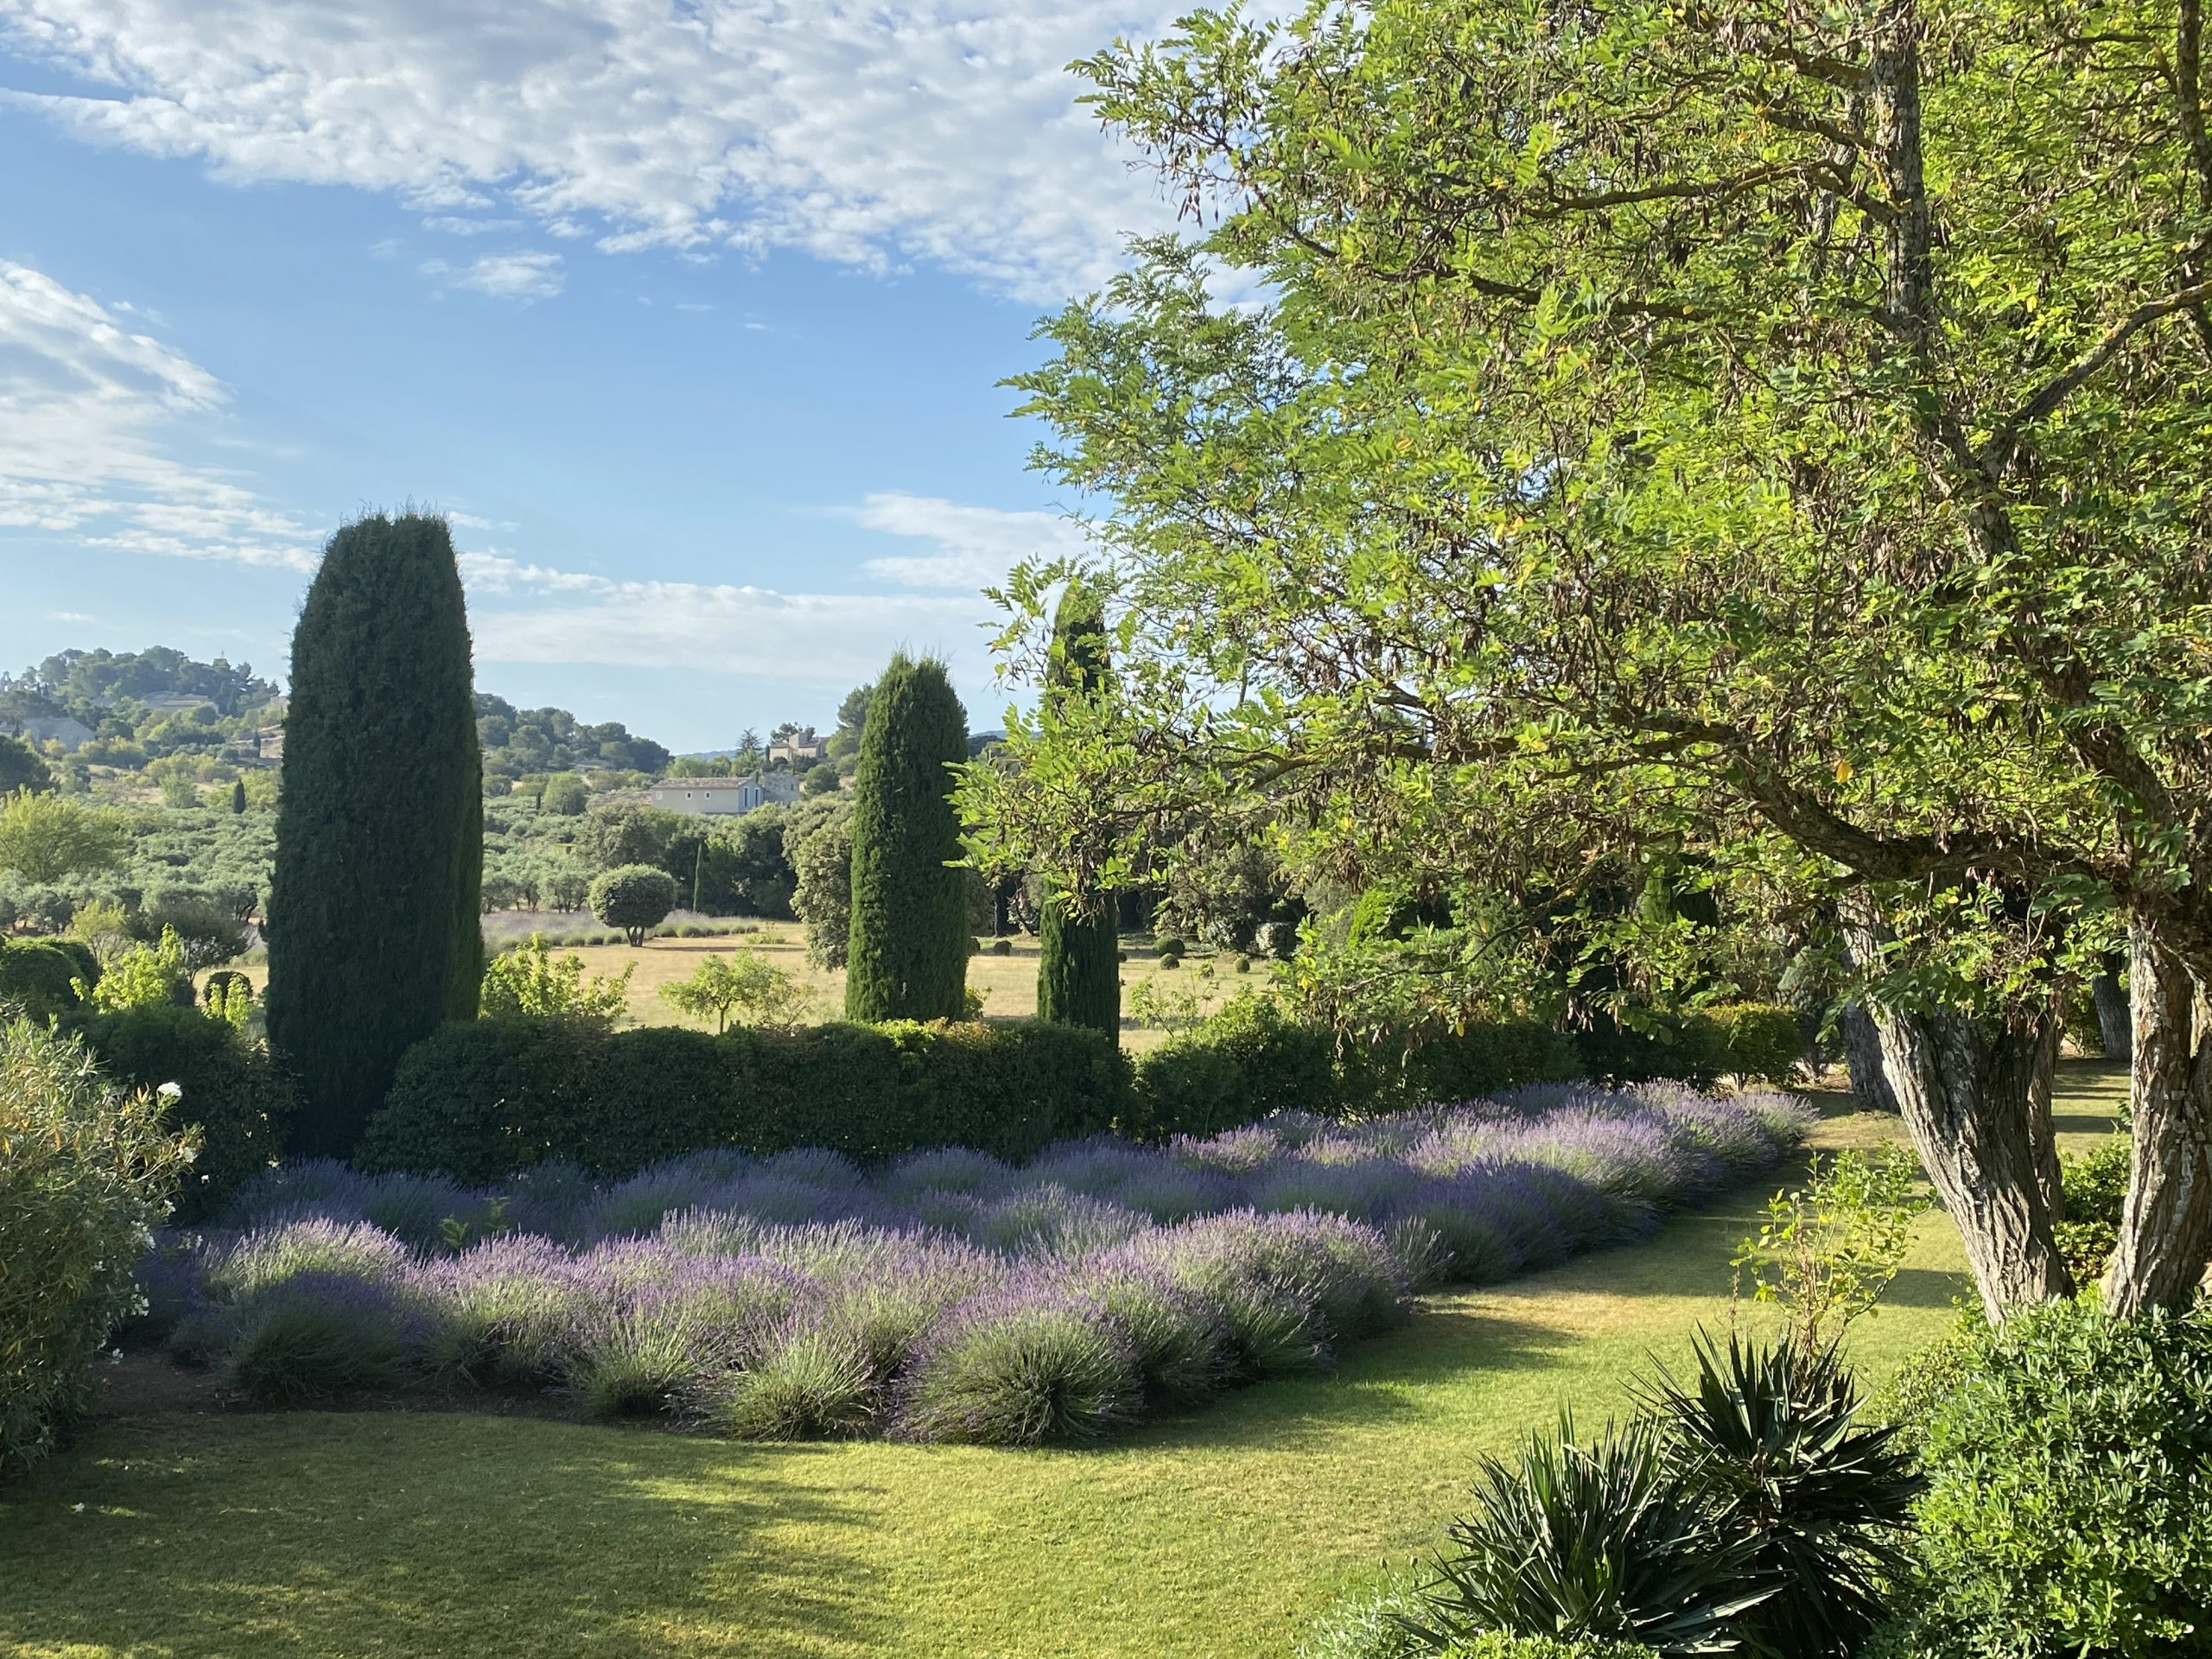 Provence: A View from a Window